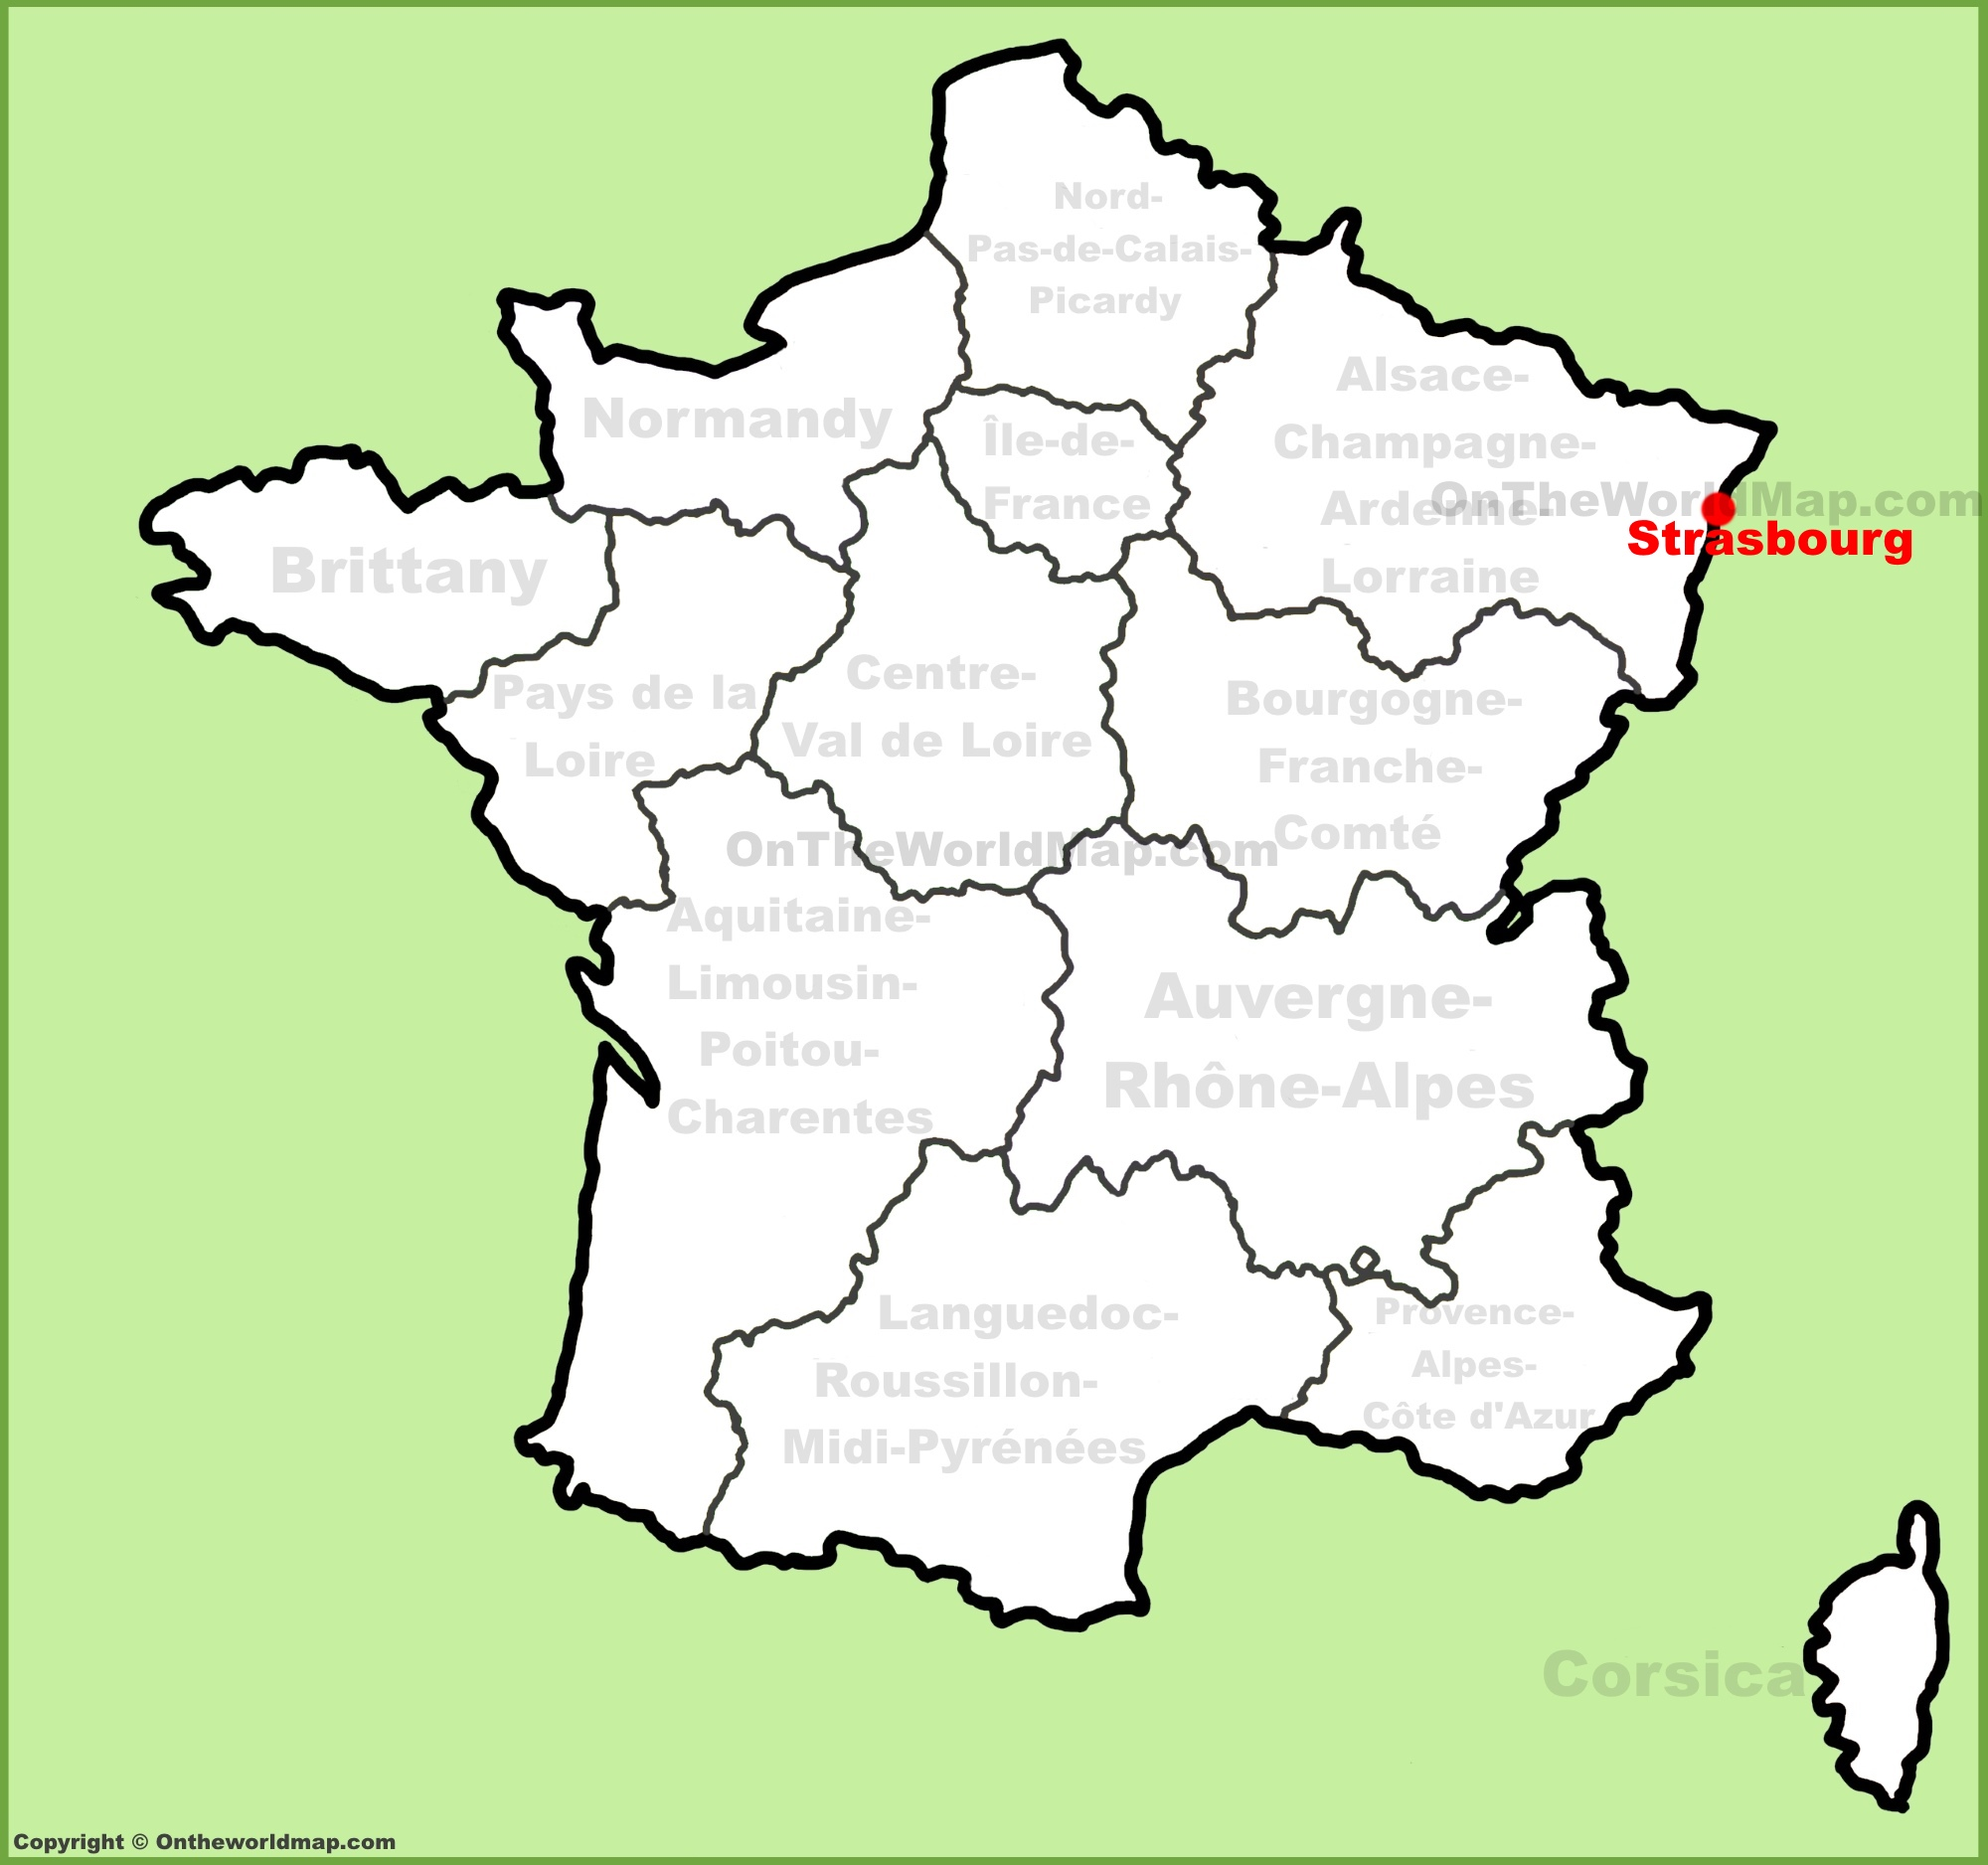 Strasbourg location on the France map